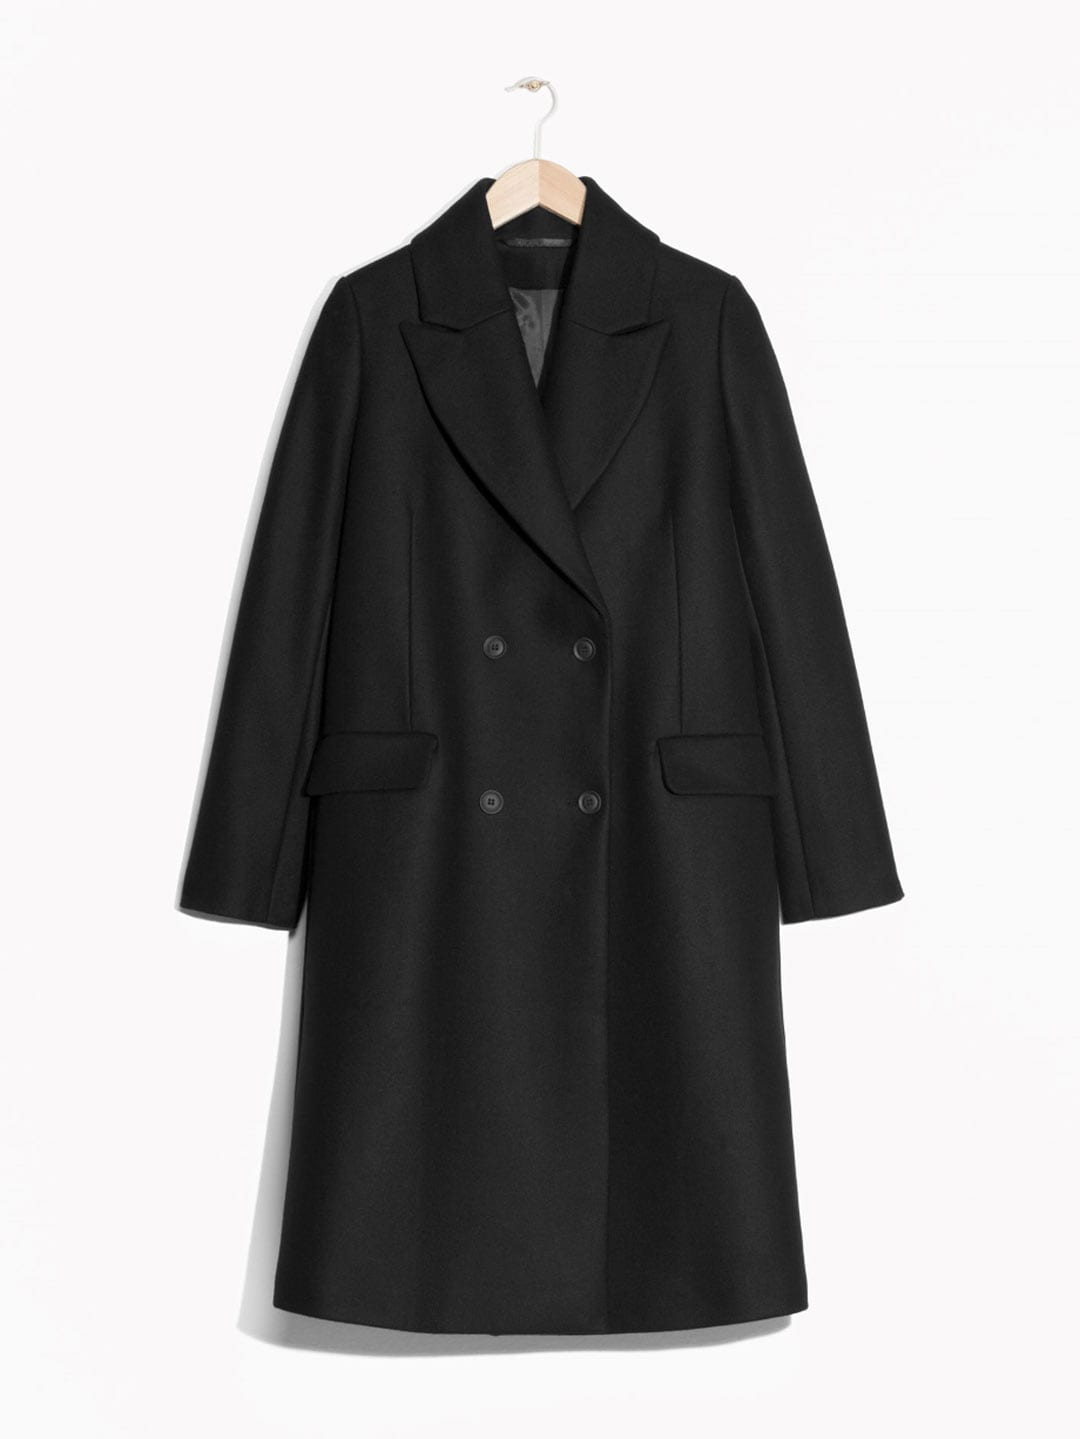 Best Winter Coats | & Other Stories Double-Breasted Wool Coat in Black